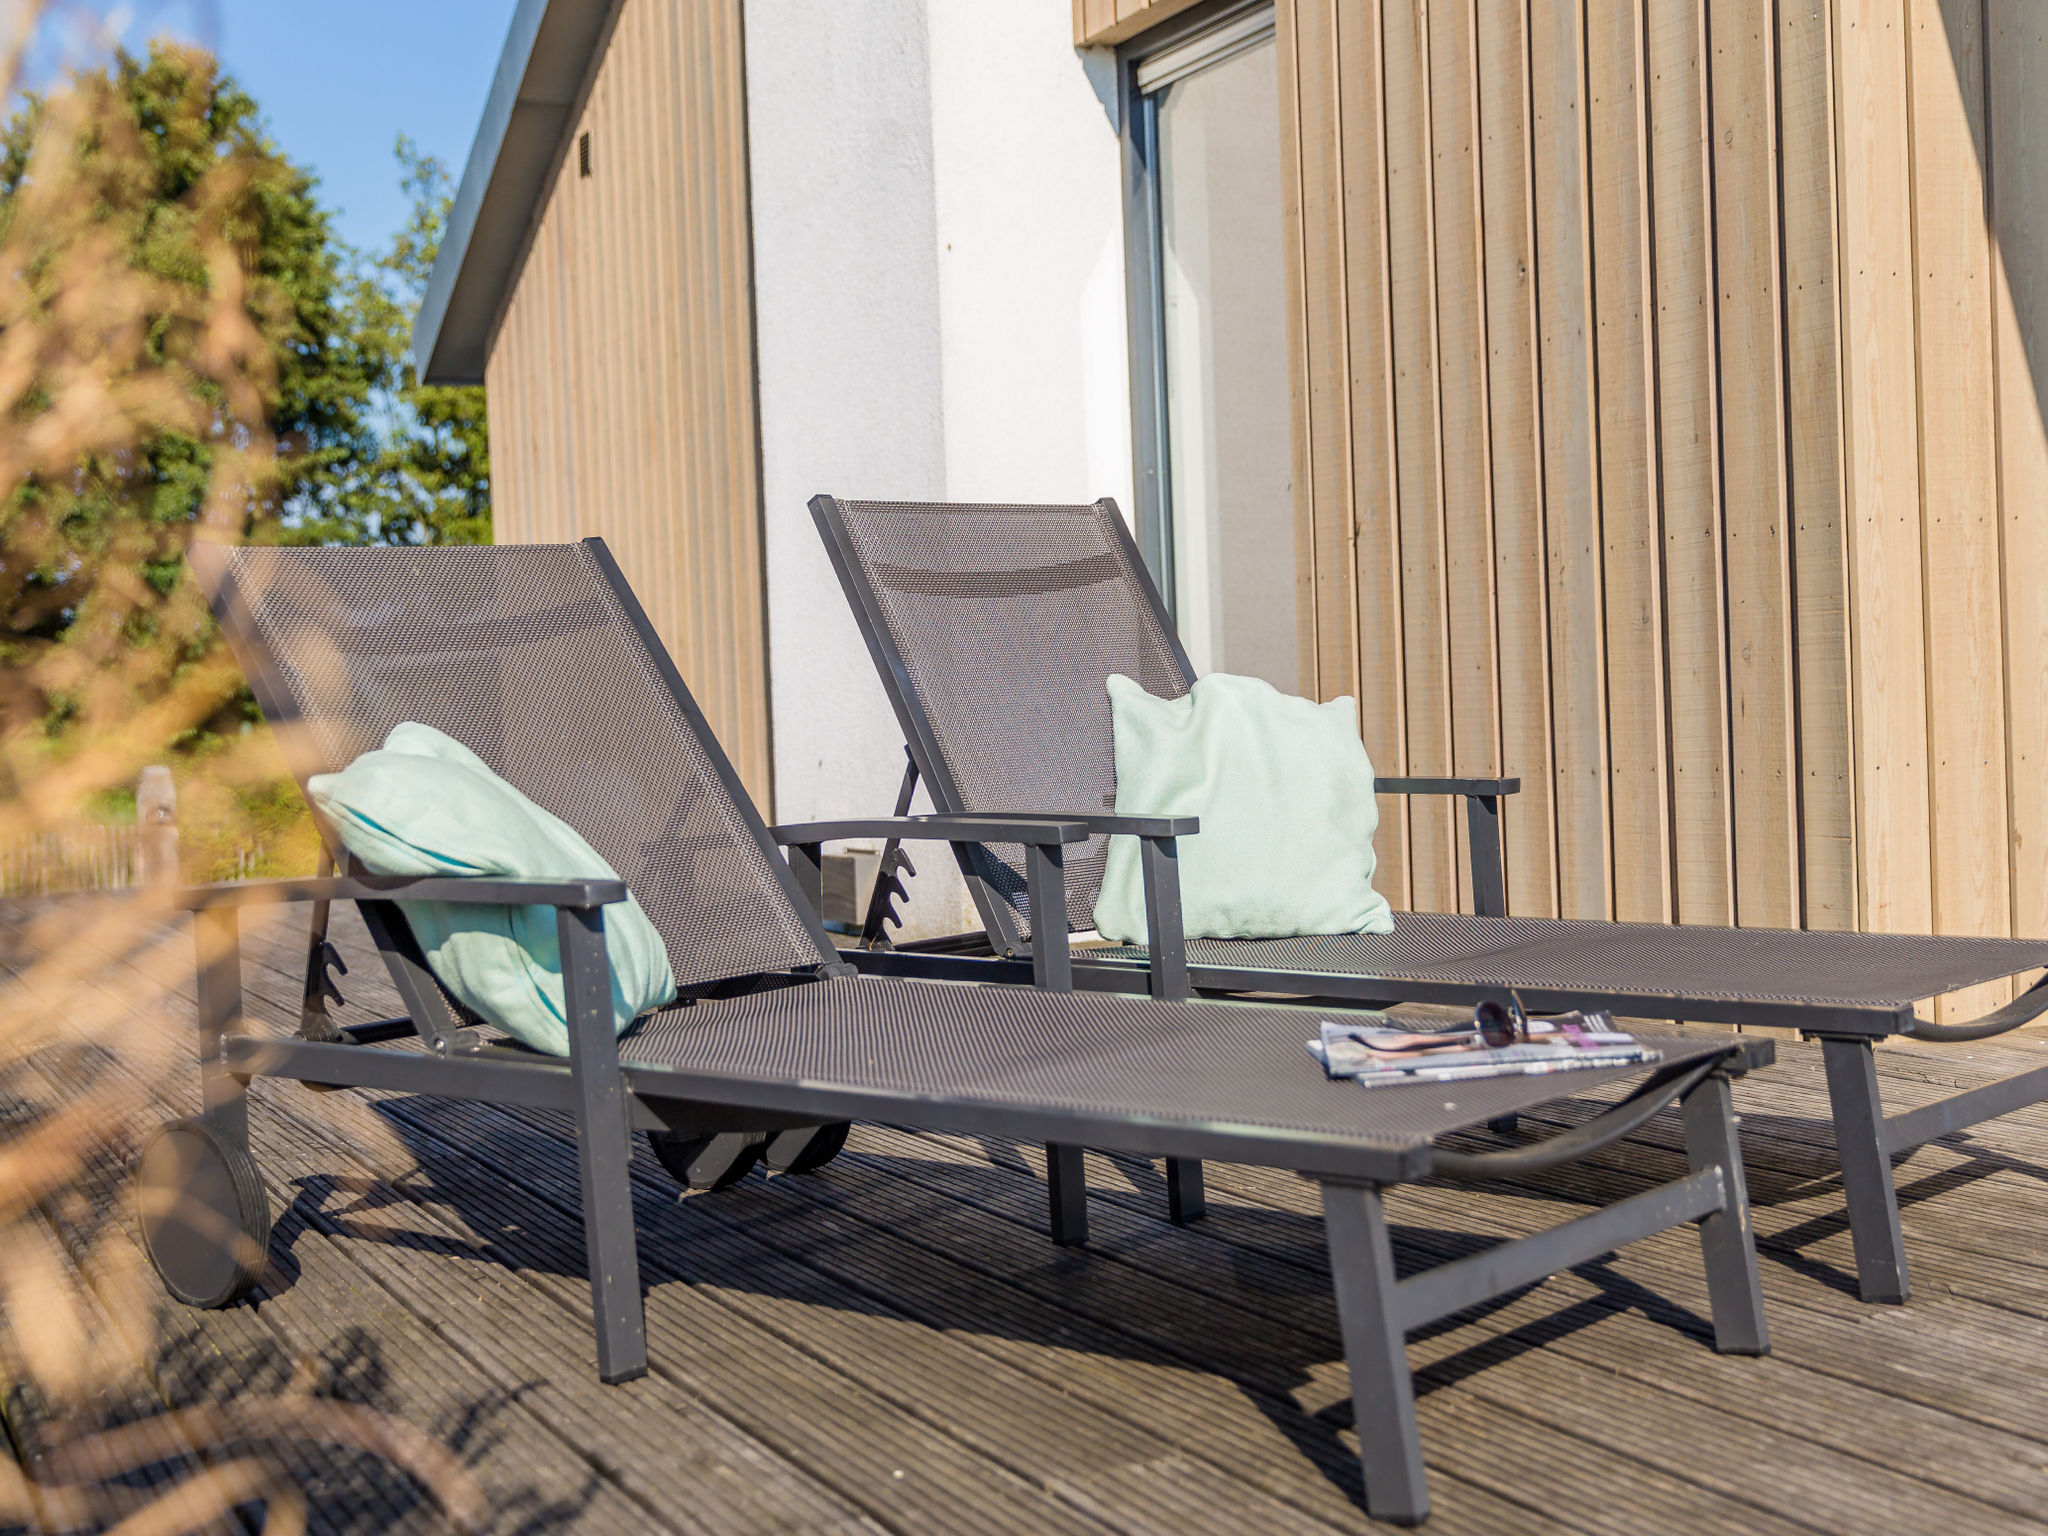 Holland | Zeeland | Holiday home Waterrijk Oesterdam - Oesterdam 8-pers | all year | TerraceBalcony